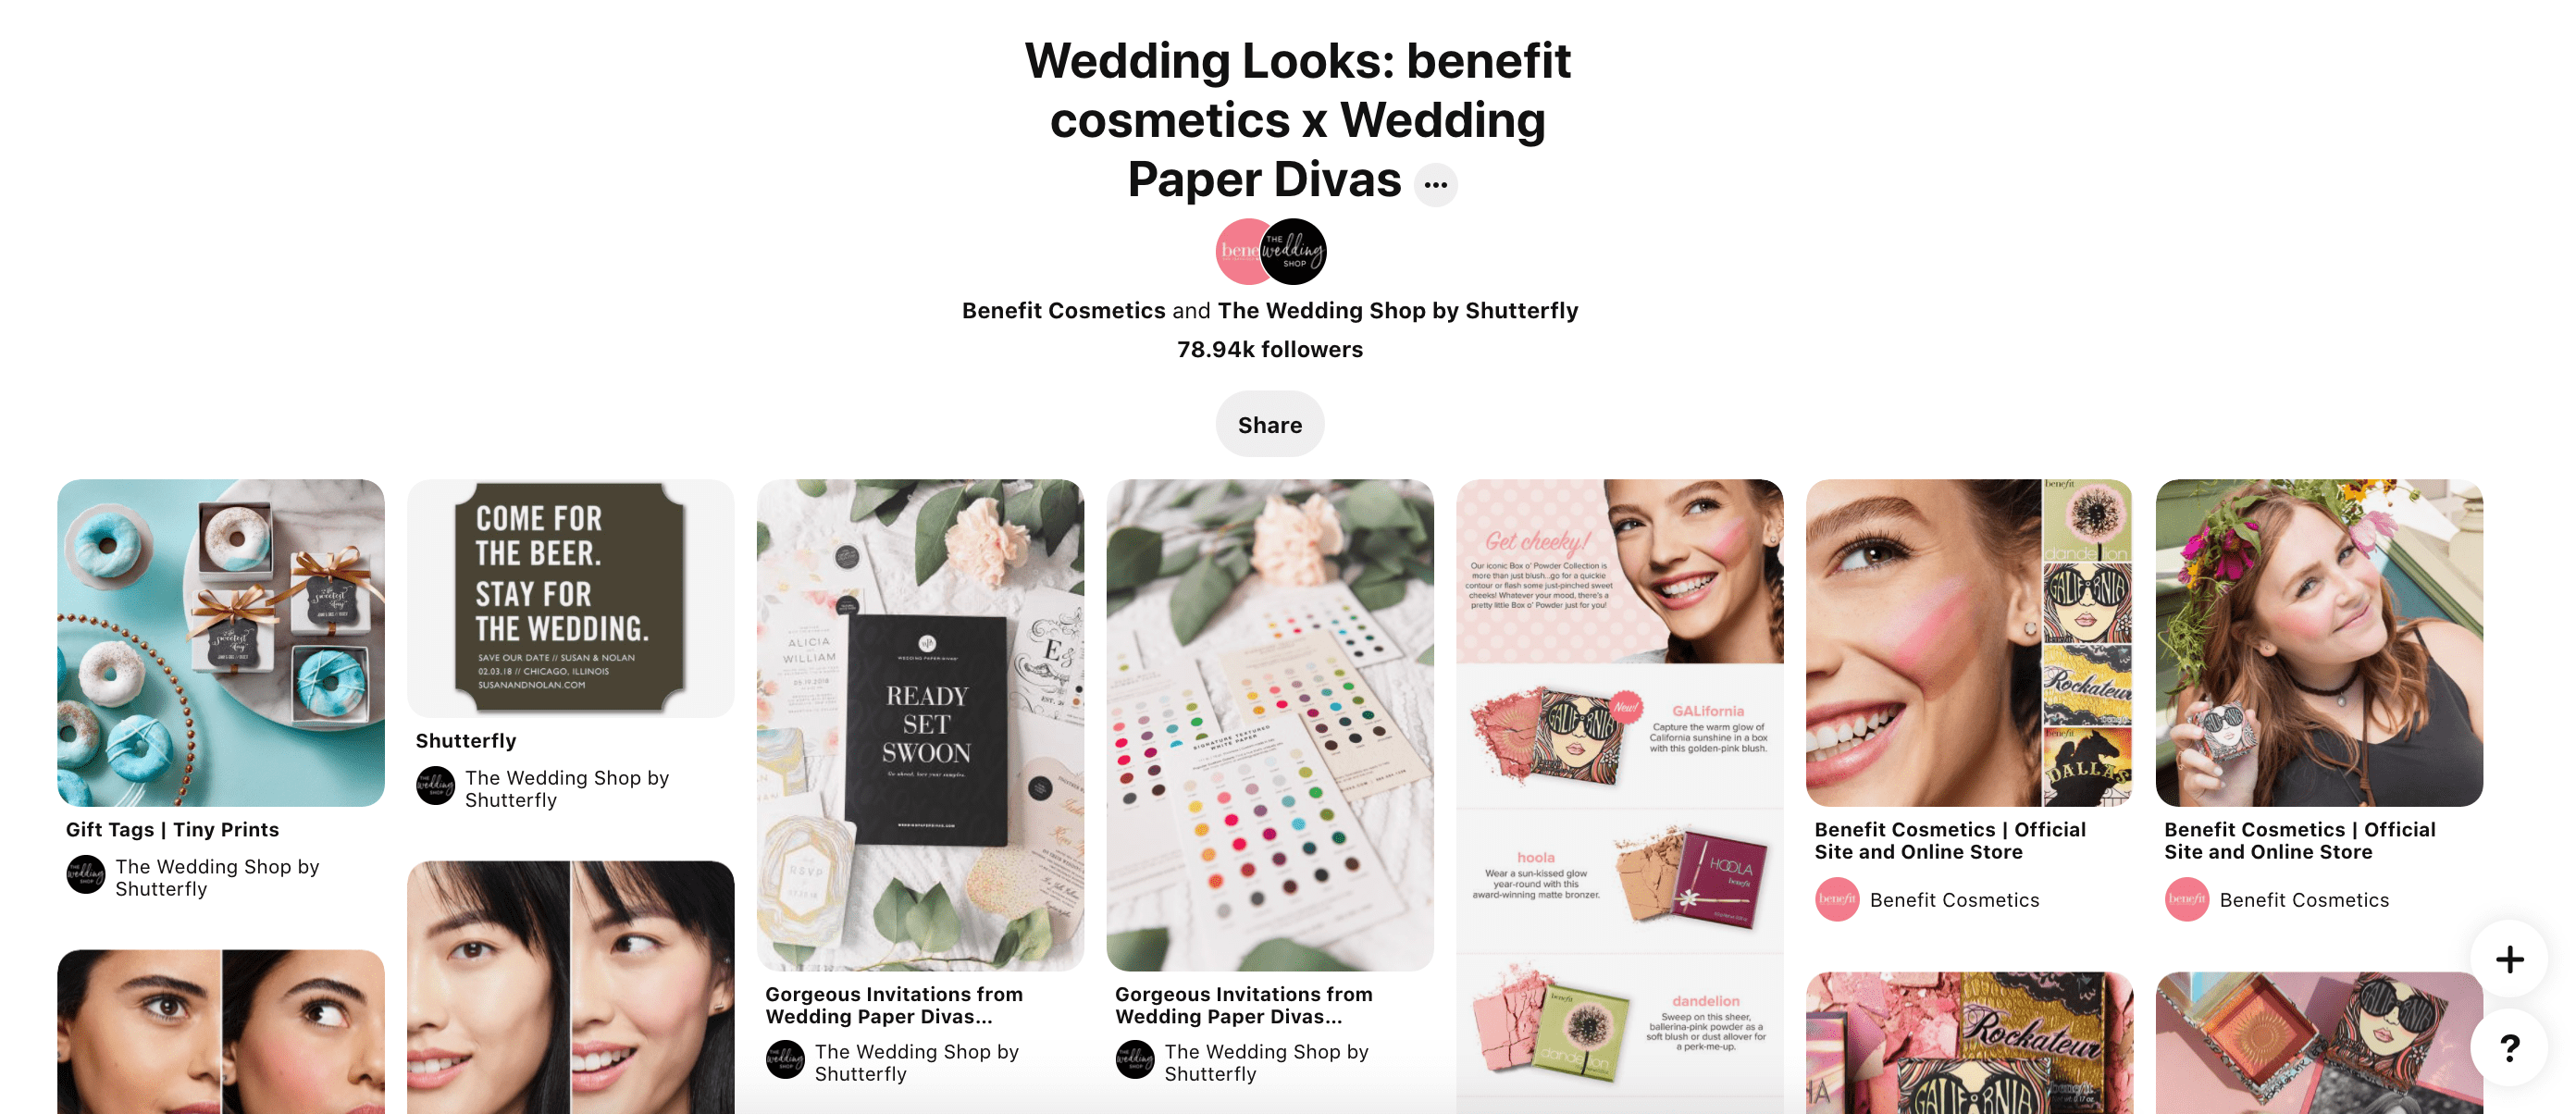 A Pinterest page that showcases a partnership between benefit cosmetics and shutterfly for weddings